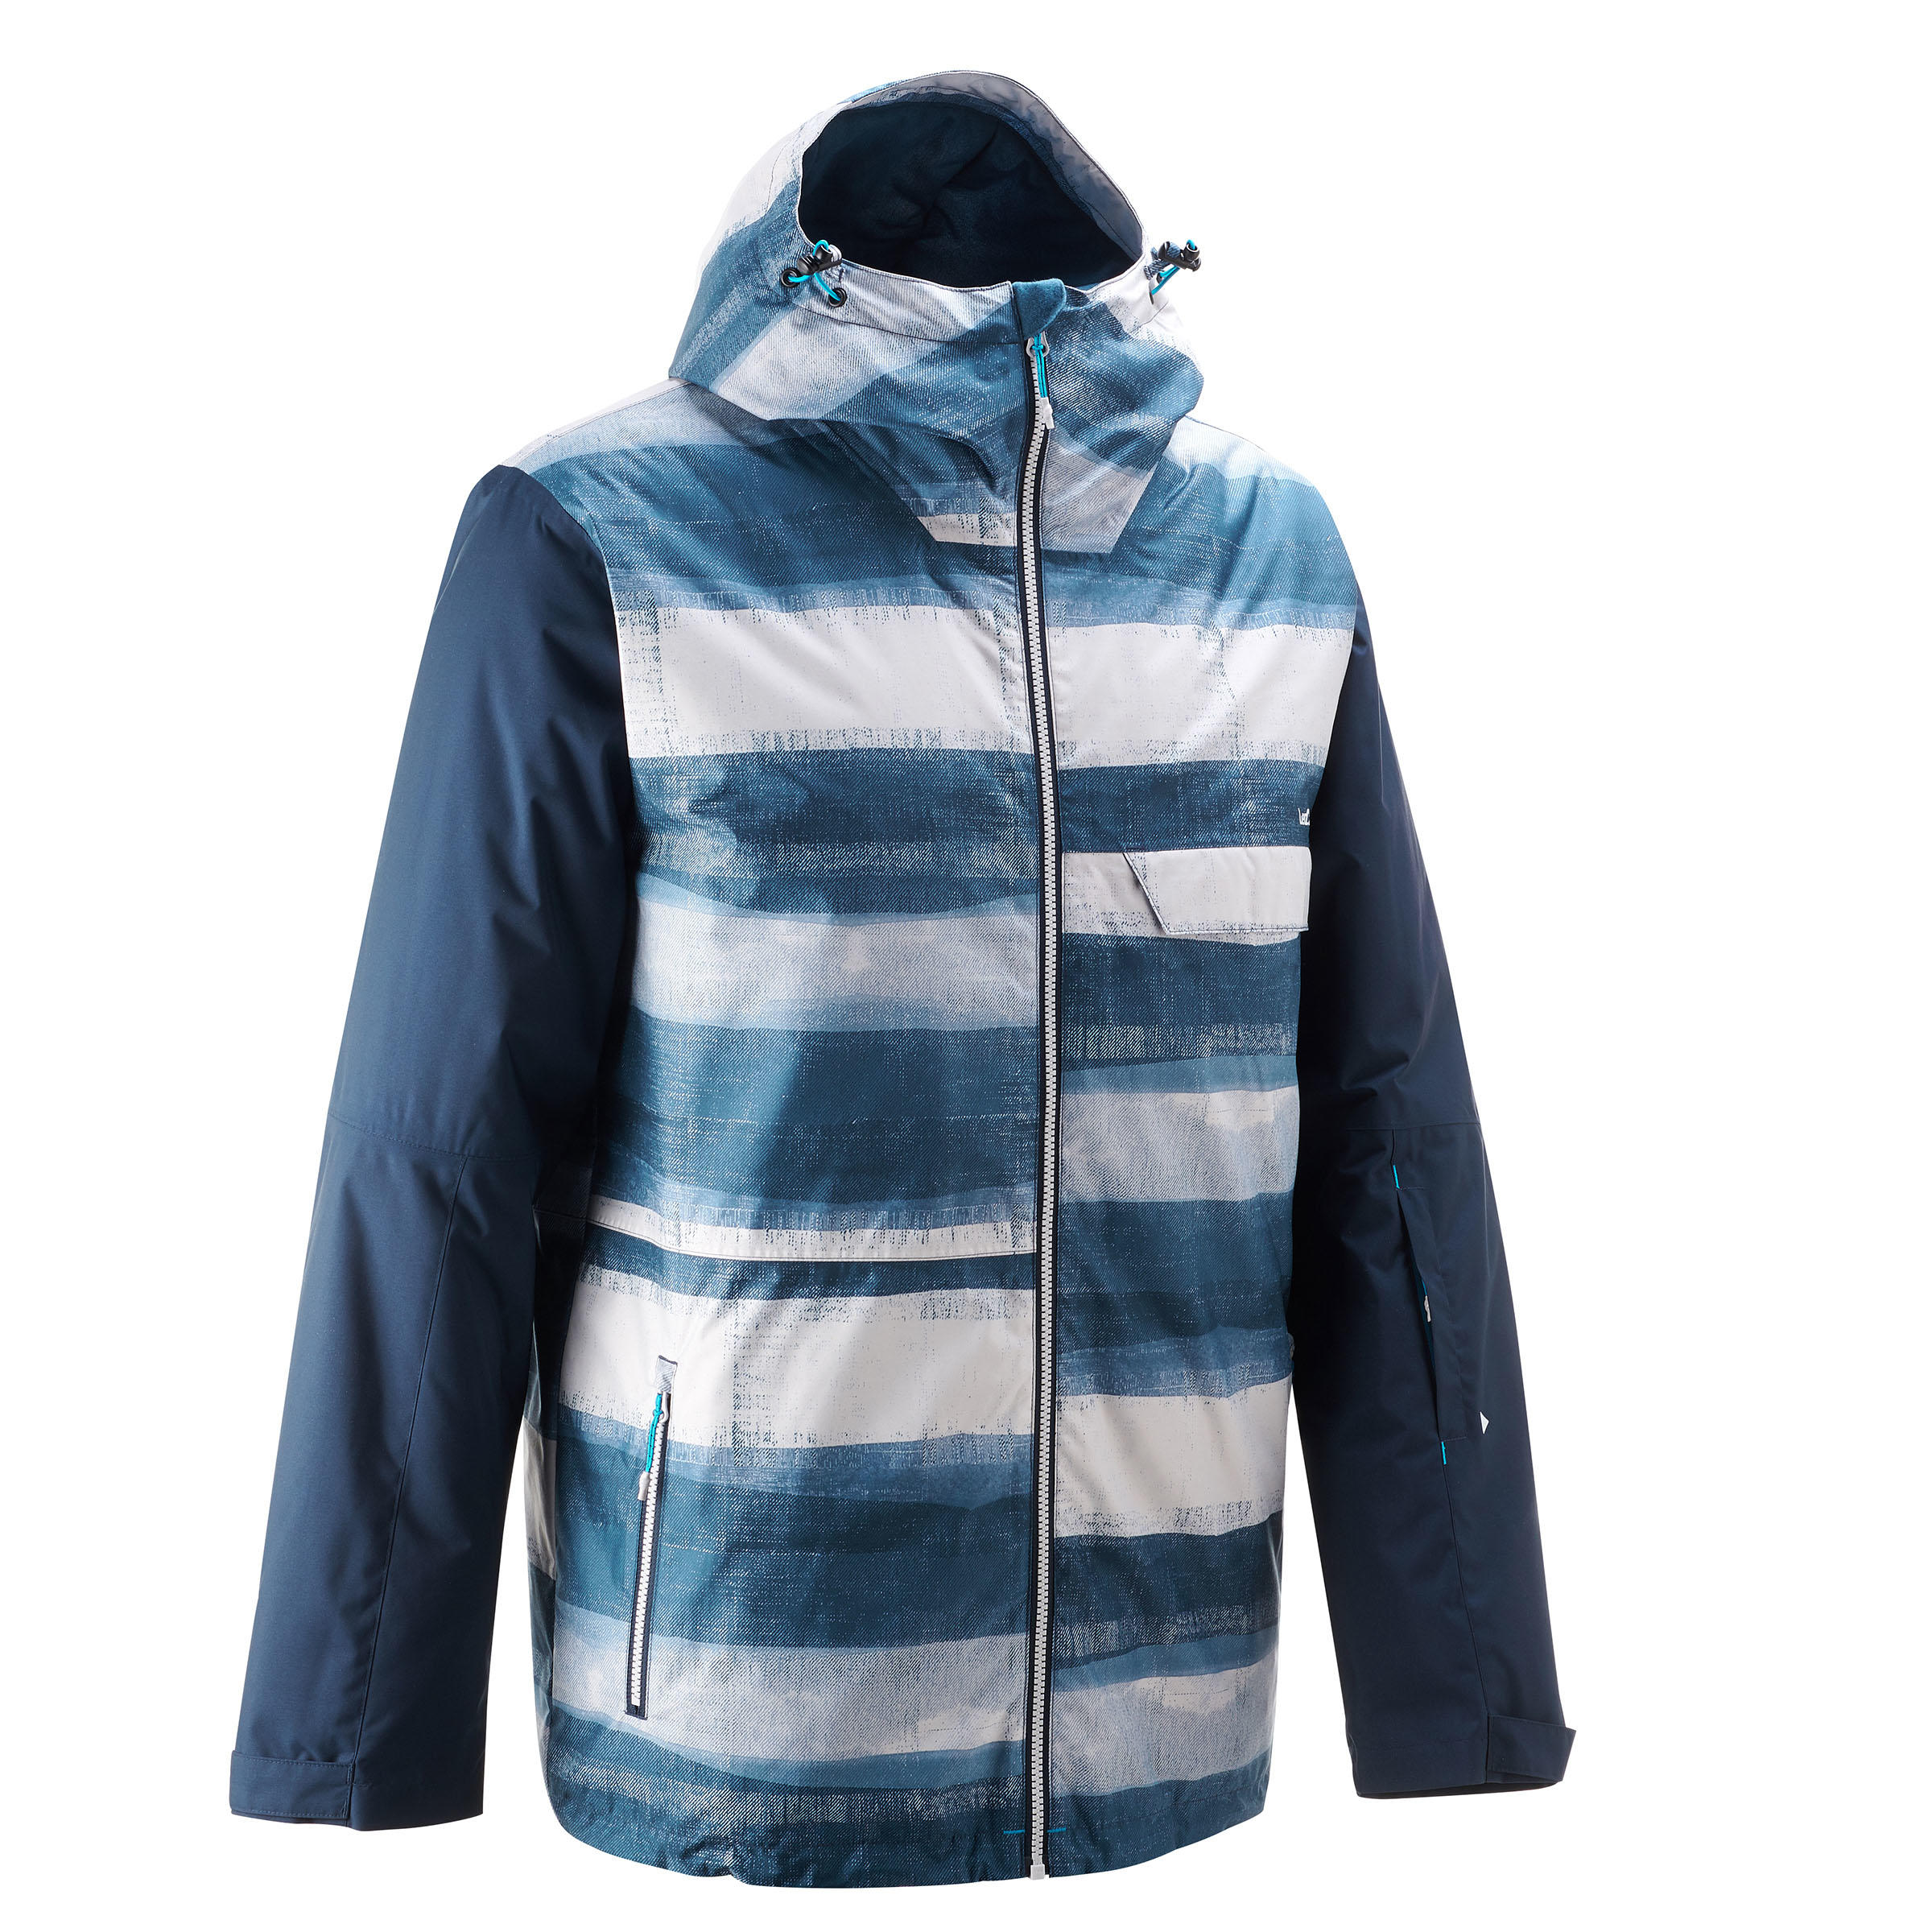 SNB JKT 100 Men's Ski and Snowboard Jacket - Blue Print